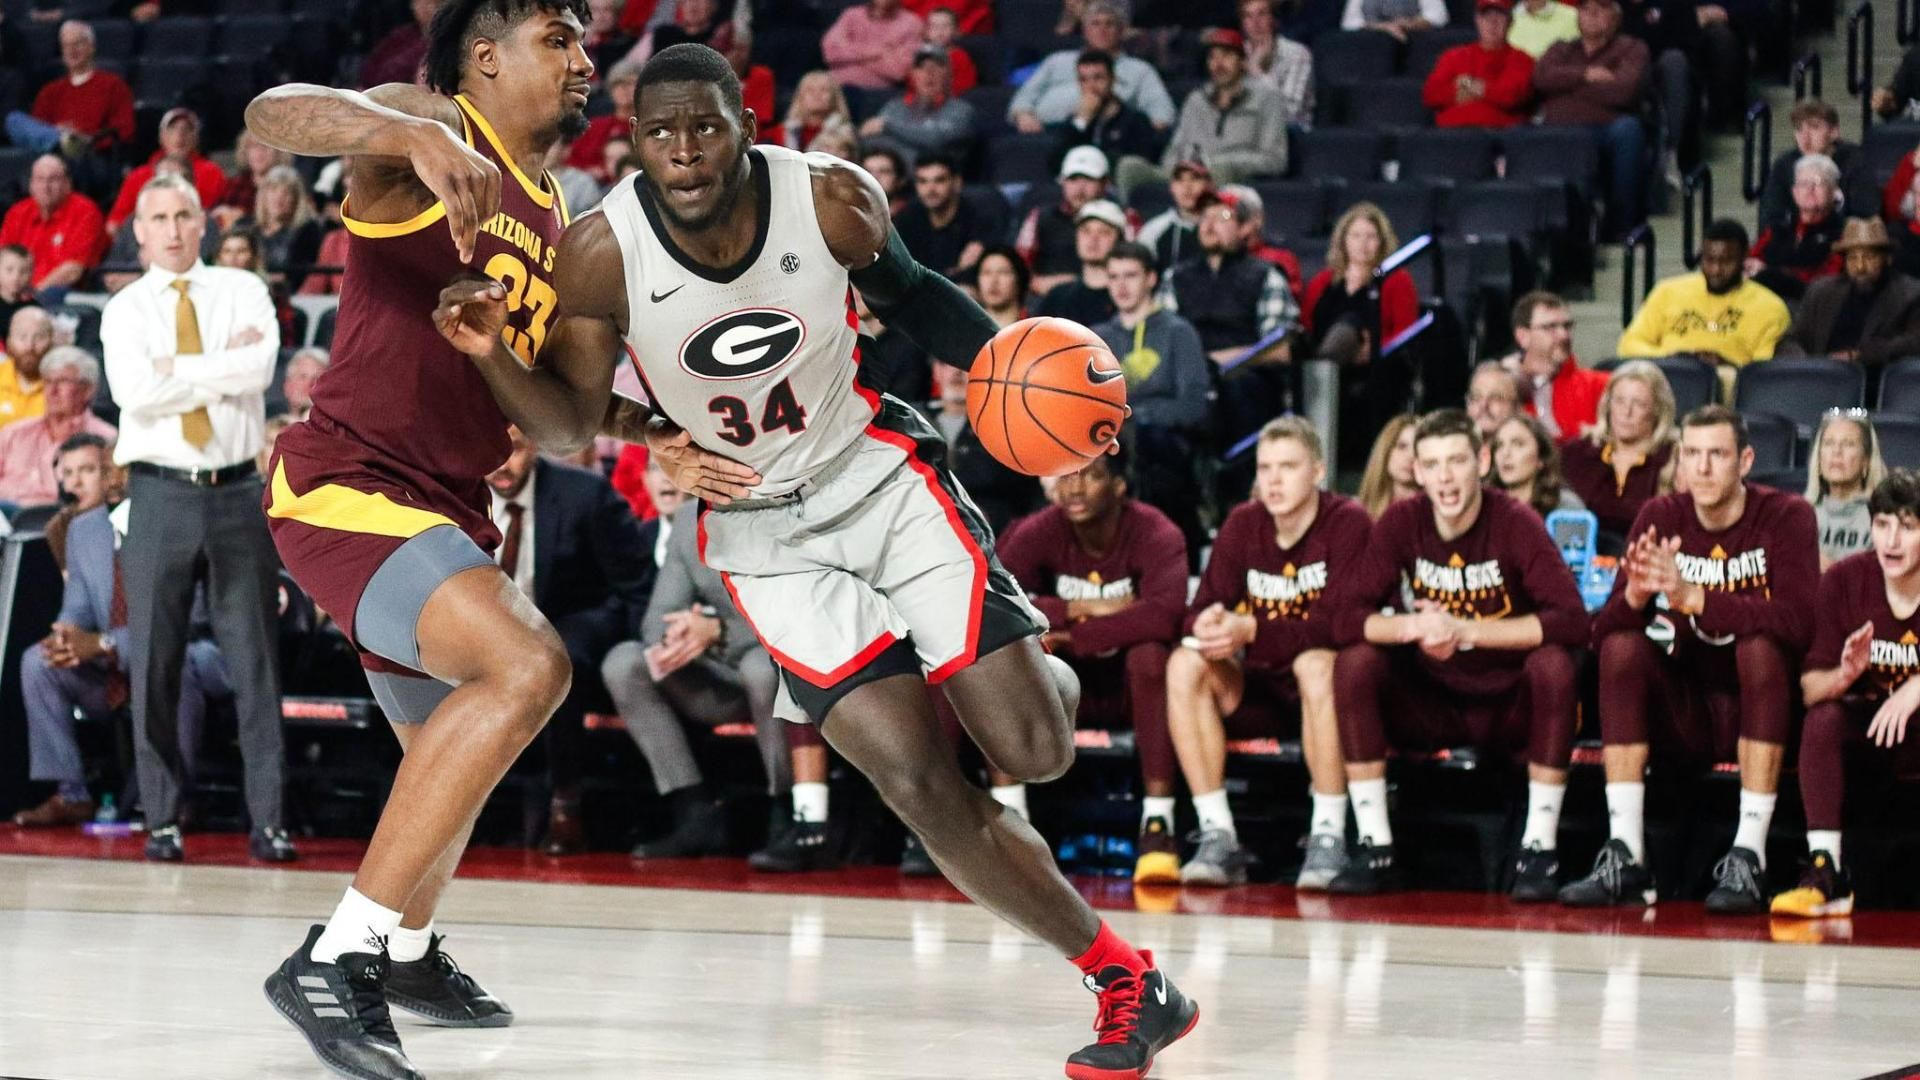 Georgia falls late vs. No. 20 Arizona State